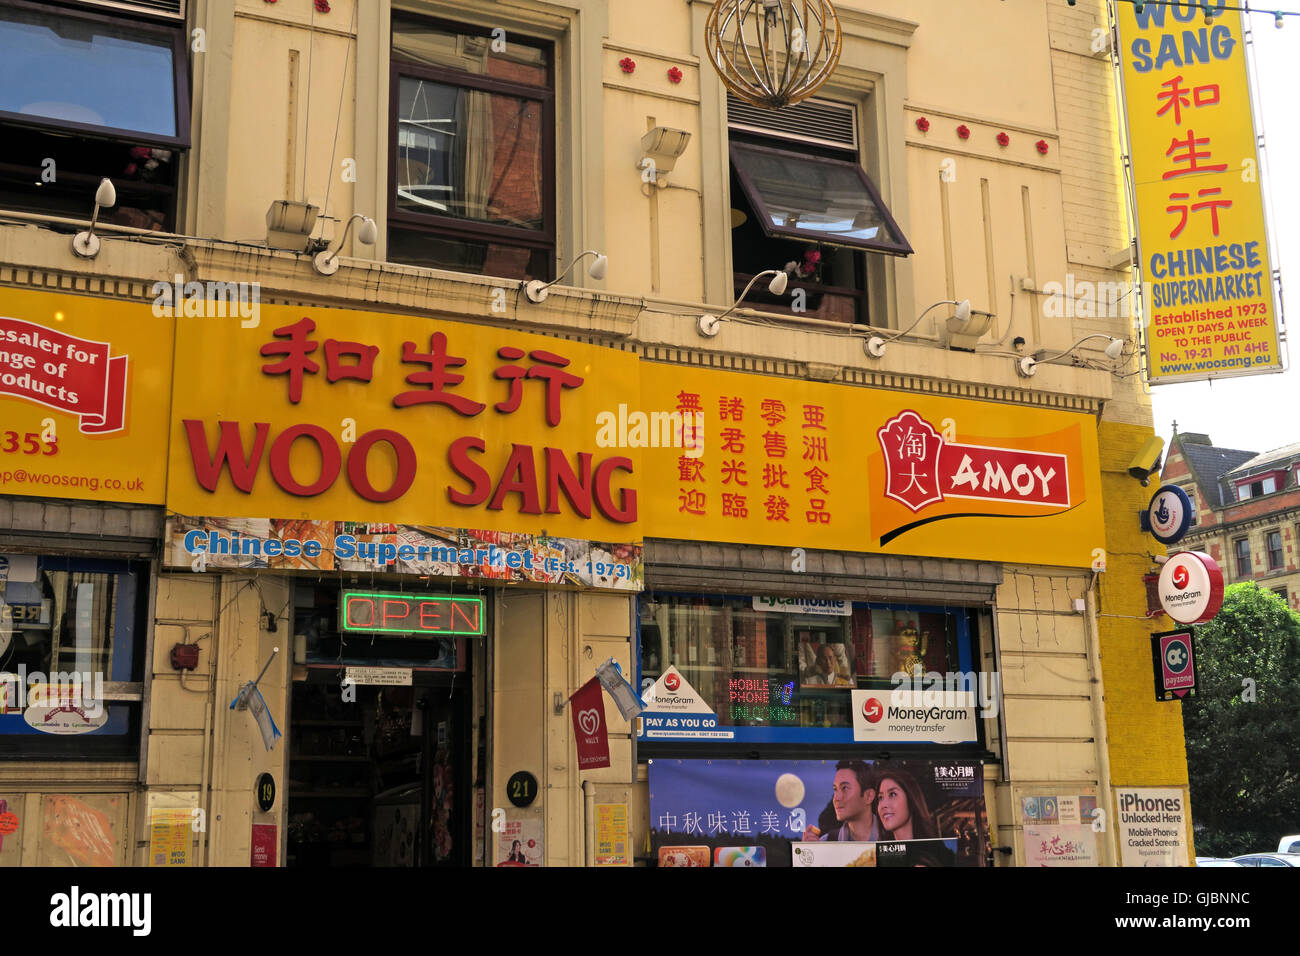 Woo Sang Supermarket, Manchester Chinatown,Faulkner Street, City Centre, Manchester, North West England, UK - Stock Image